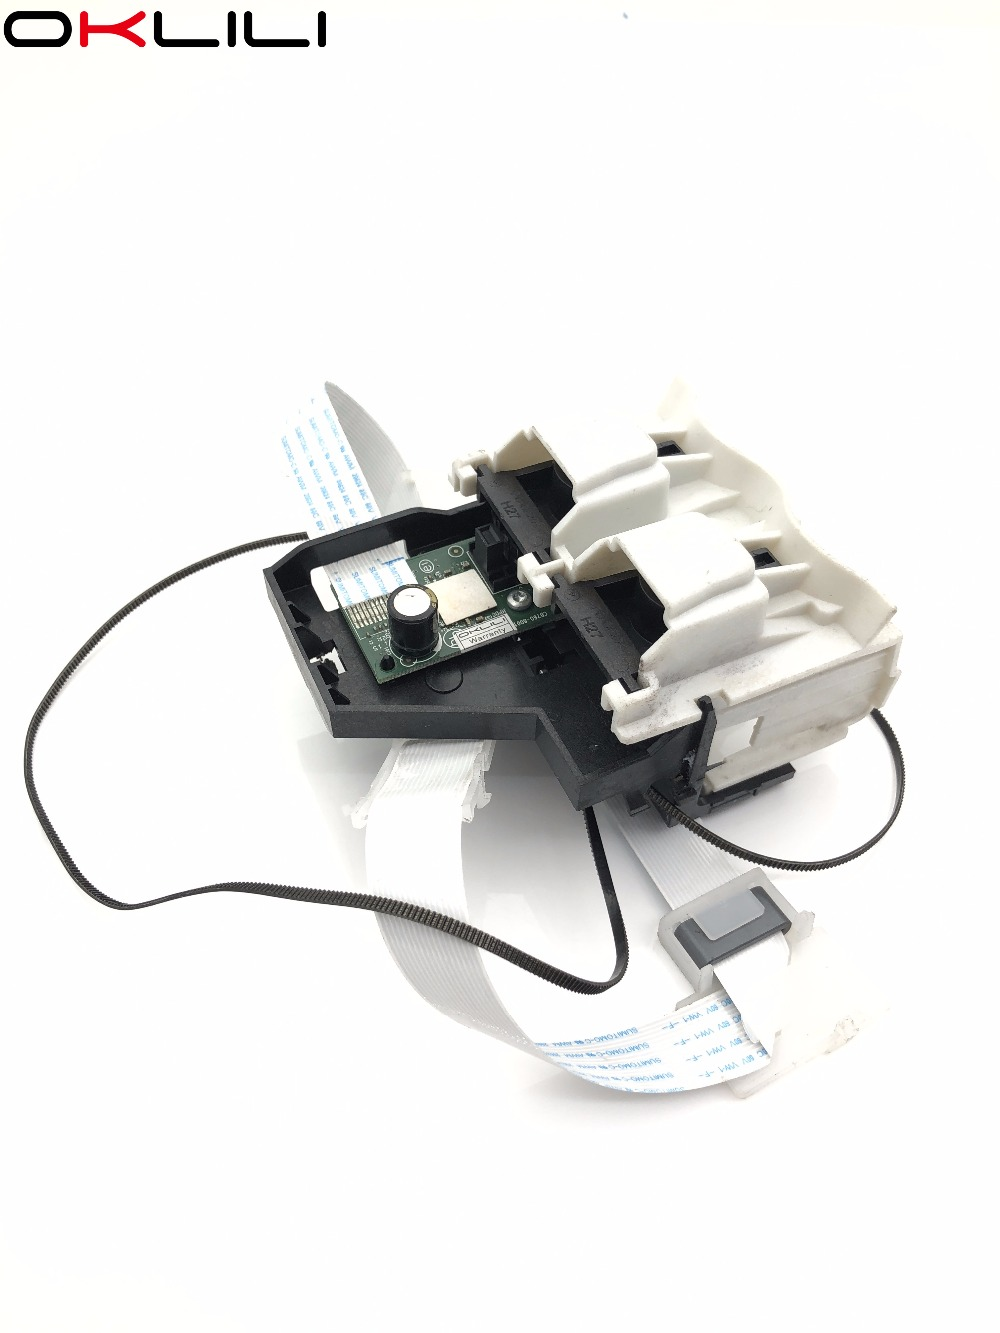 802 802XL Carriage Unit Assembly ASSY for HP DeskJet 1000 1010 1050 1051 1055 1510 1512 2000 2010 2050 2060 2510 2540 3000 3050 ролик захвата бумаги hp 1010